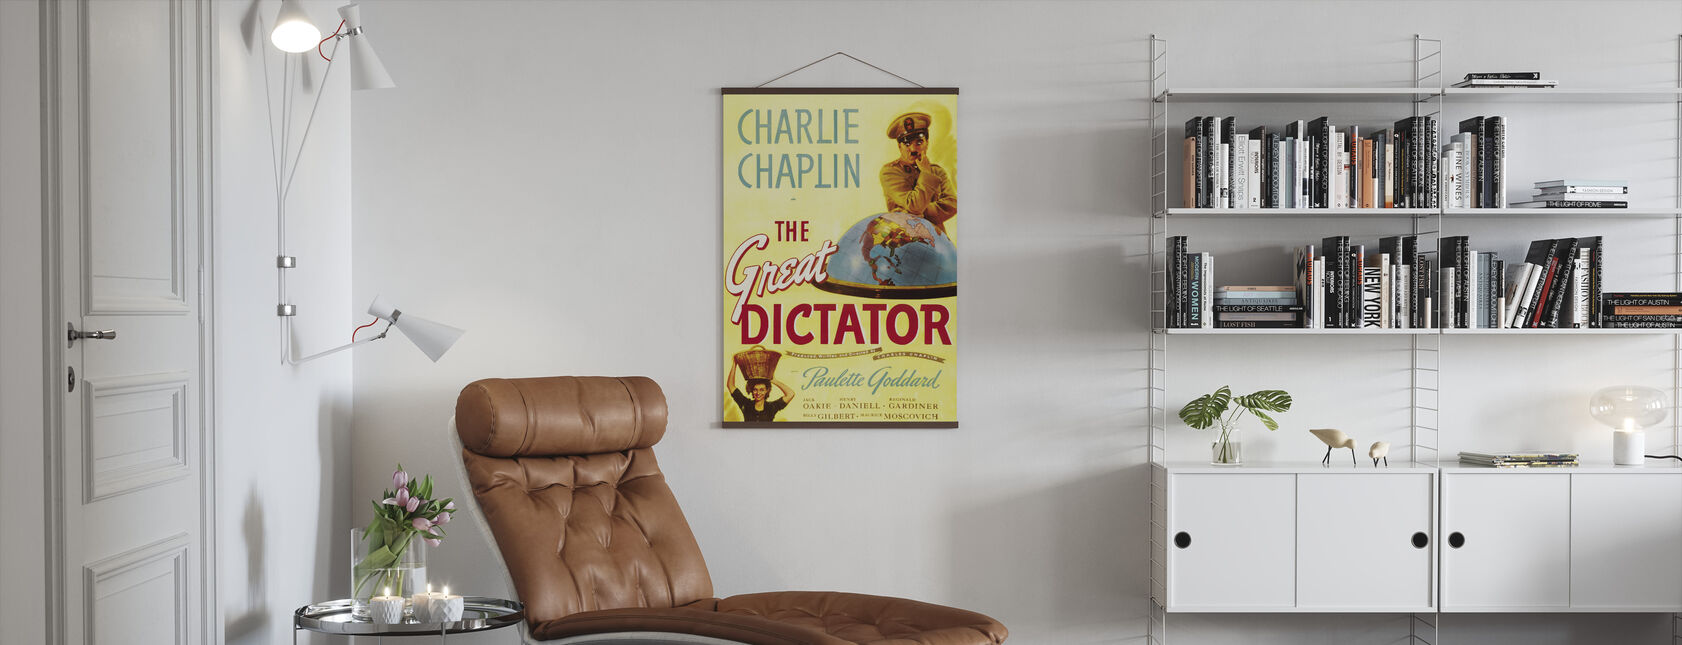 Charlie Chaplin in the Great Dictator - Poster - Living Room